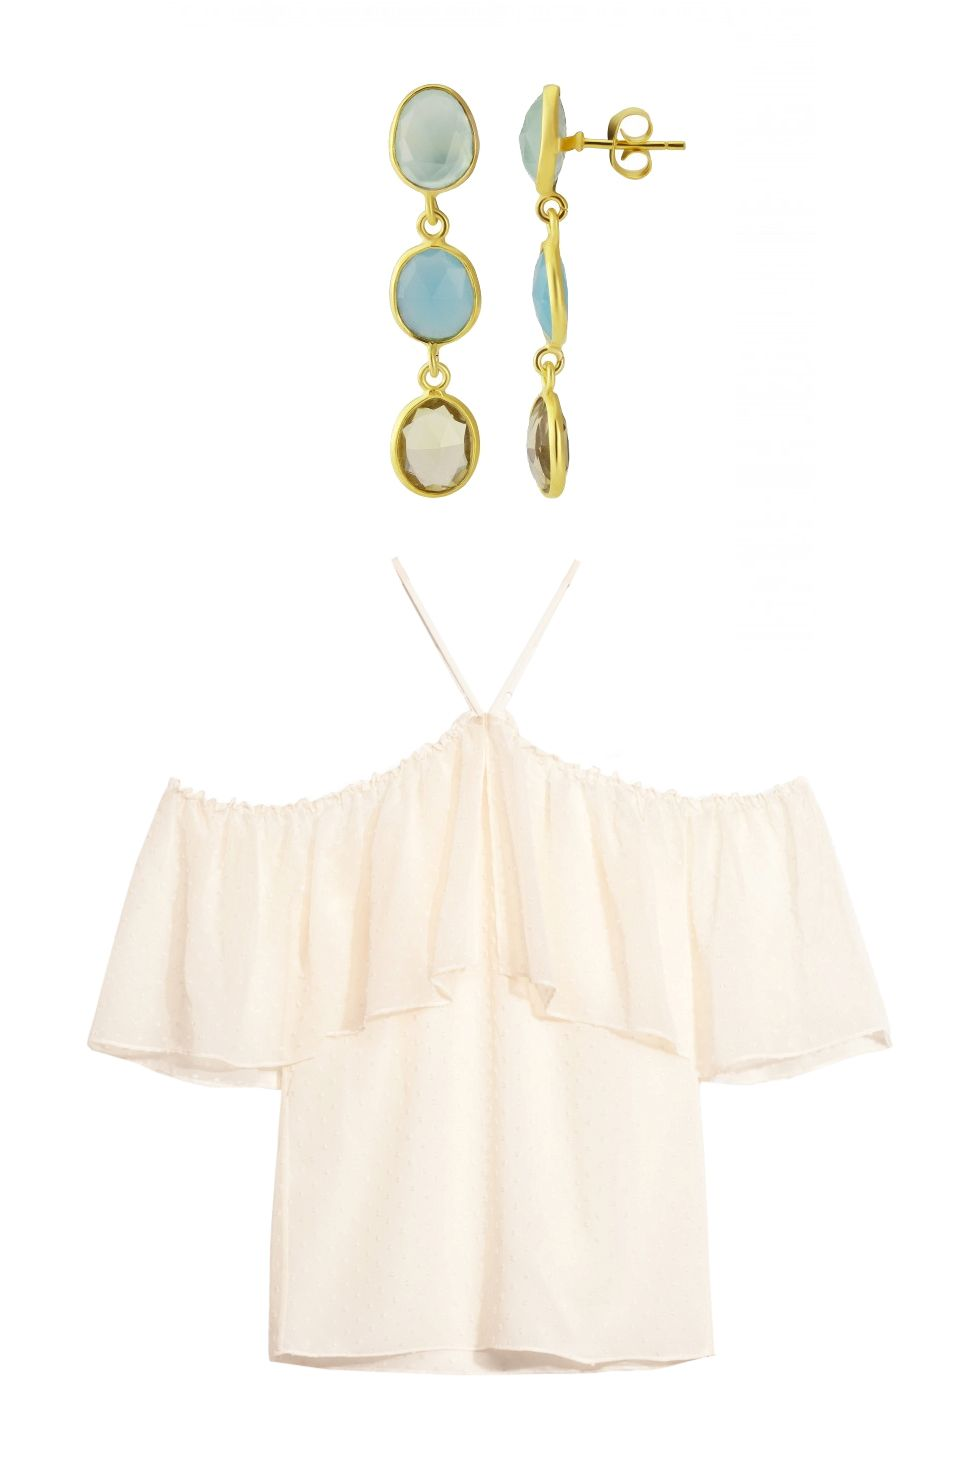 "<p>Auree Jewelry gold and gemstone earrings, $112, <a href=""http://www.aureejewellery.com/tuscany-earrings.html"">aureejewellery.com</a>; & Other Stories off-the-shoulder top, $85, <a href=""http://rstyle.me/n/bnra5hbqb8f"">stories.com</a>.</p>"